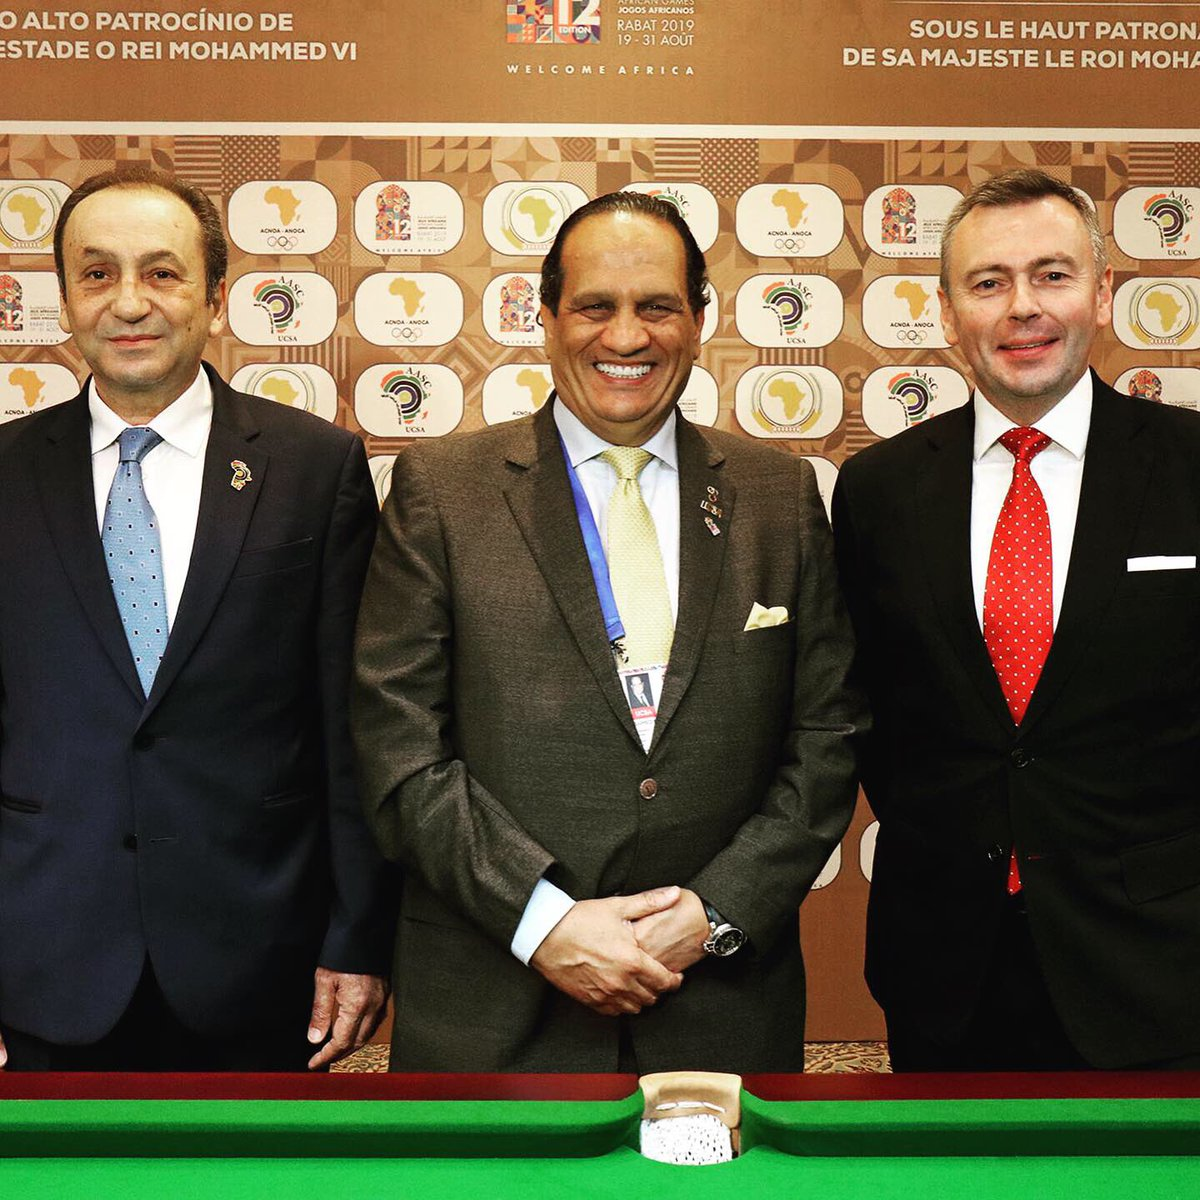 test Twitter Media - 📰 REPORT | Moroccan snooker players dominated on home soil this week by claiming a trio of gold medals as the sport was contested at the African Games for the first time in its history.  Full story 👉🏻 https://t.co/TaC84167xd  #Cue4All https://t.co/VptTRhgpdb